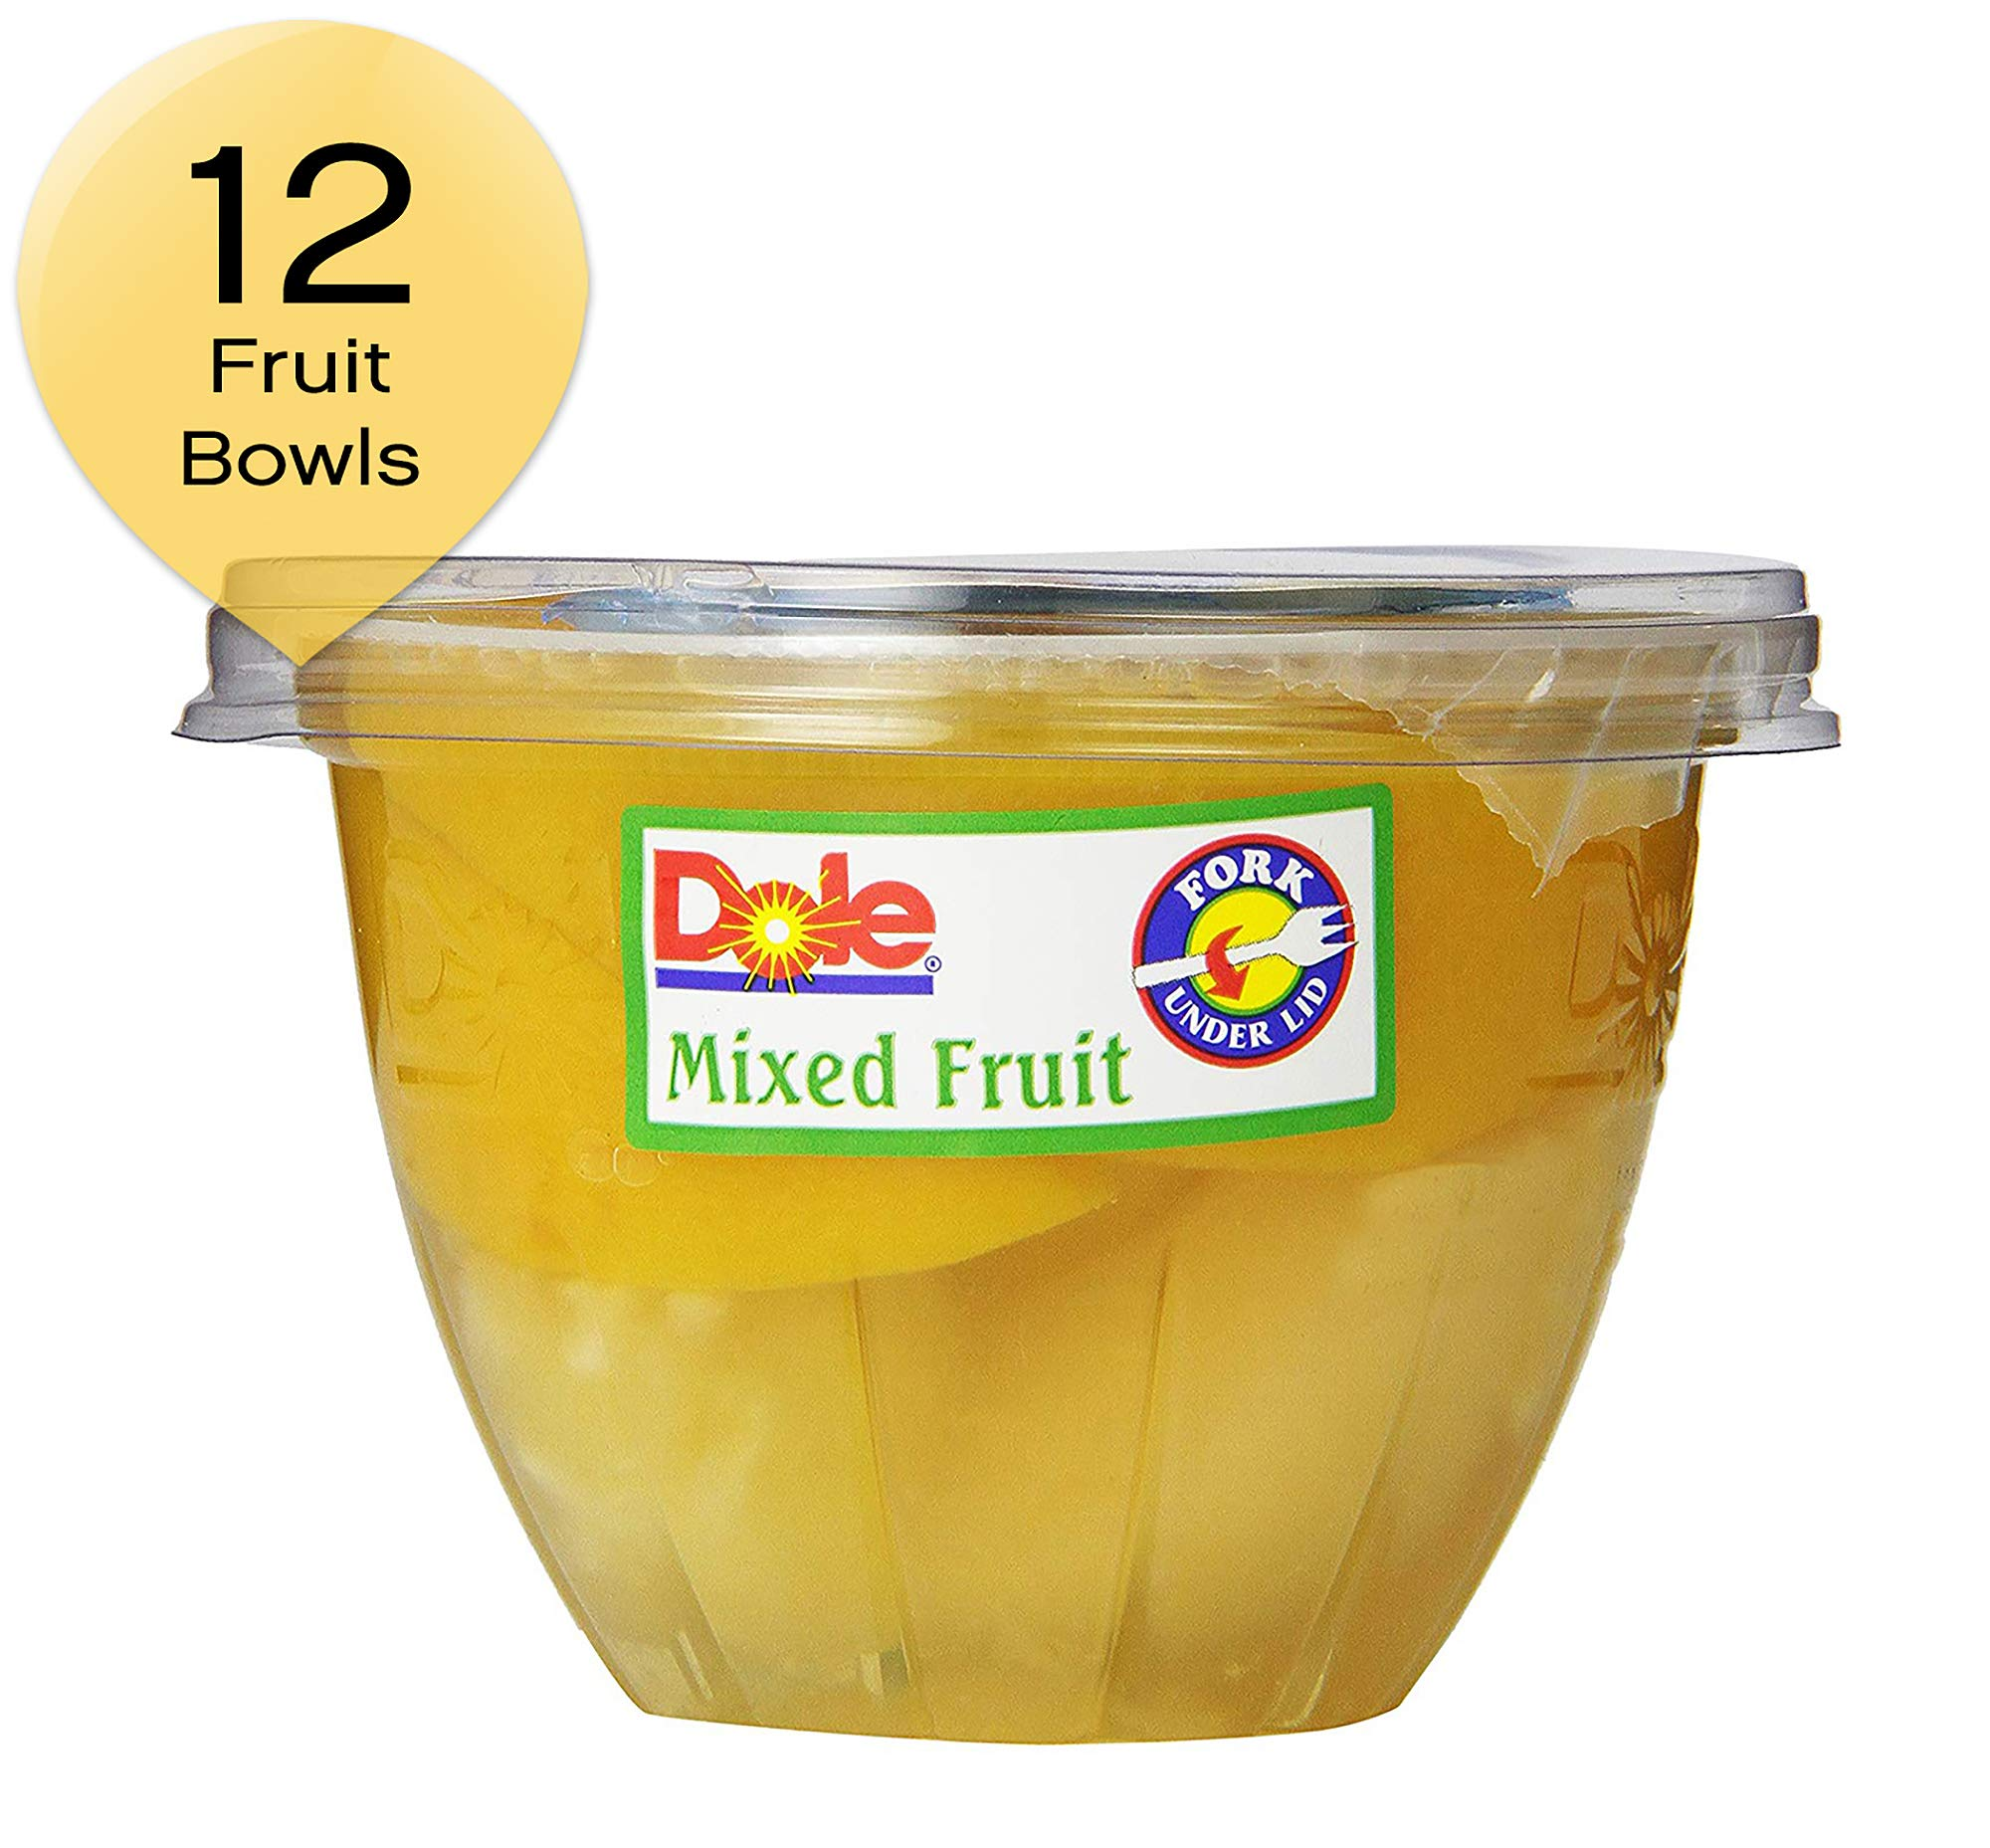 Dole Mixed Fruit In Light Syrup, 7-Ounce Containers (Pack of 12)